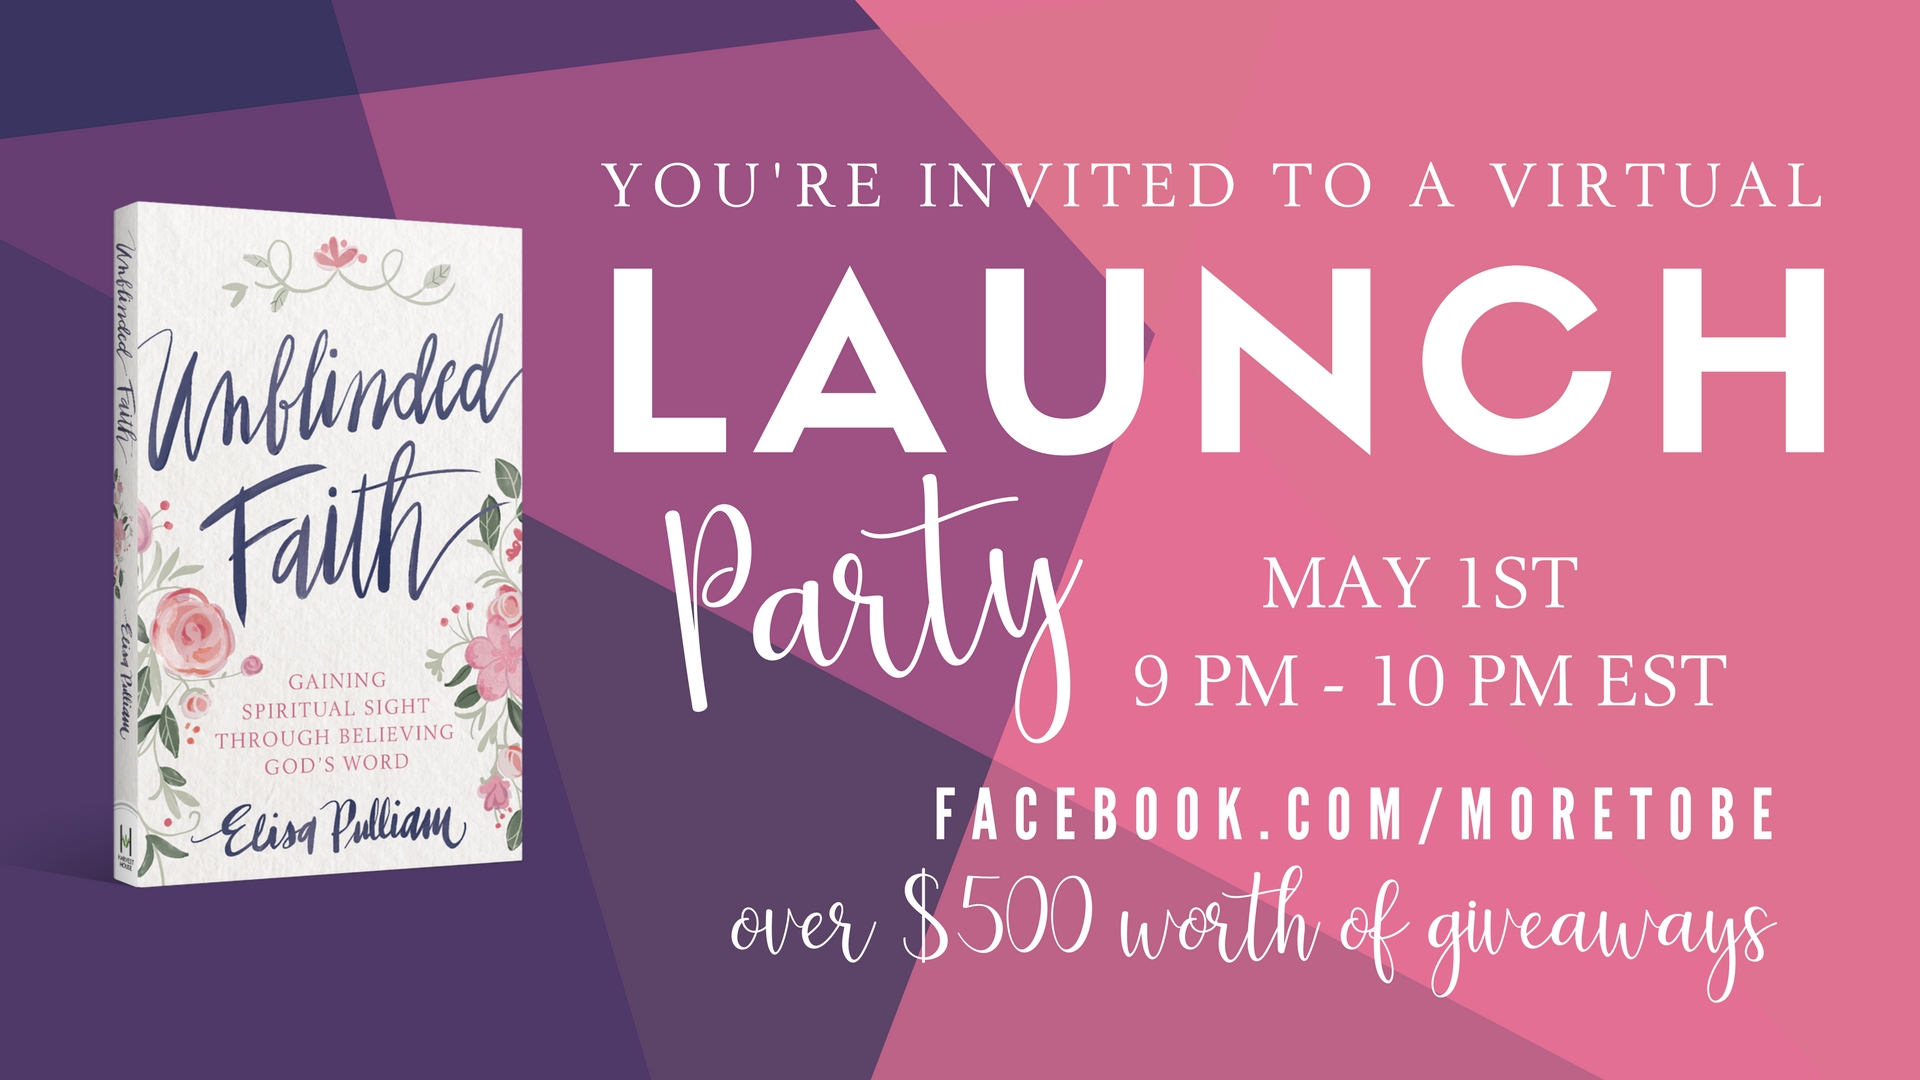 You're Invited to Our Virtual Launch Party